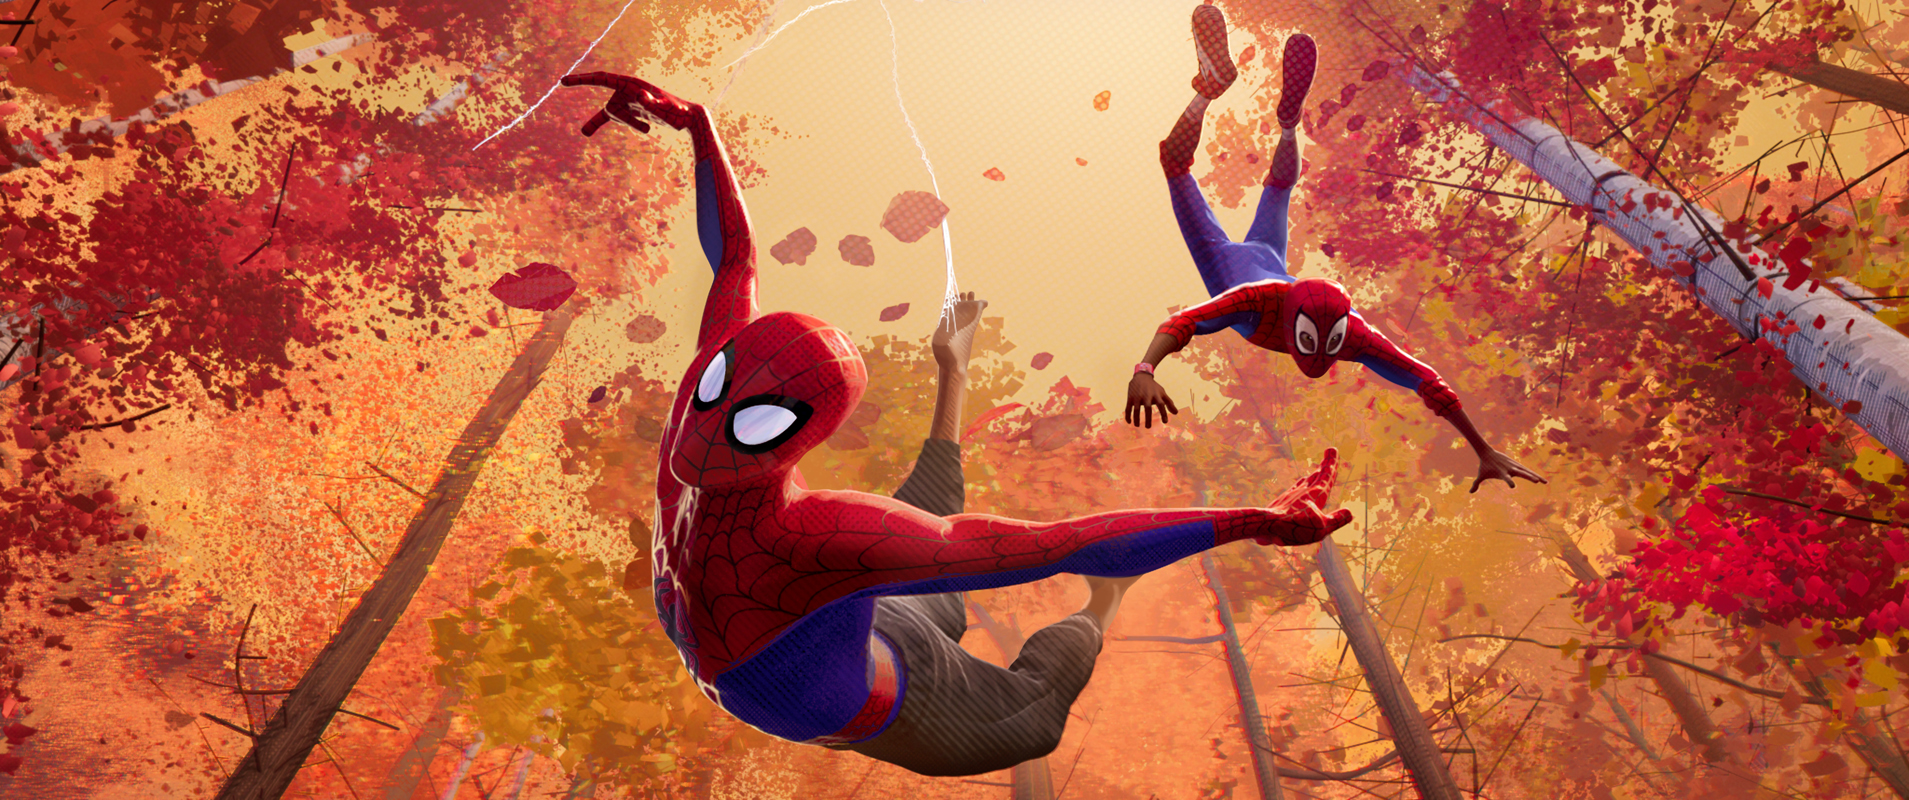 ART OF THE CUT on editing Spider-Man: Into the Spider-Verse 14